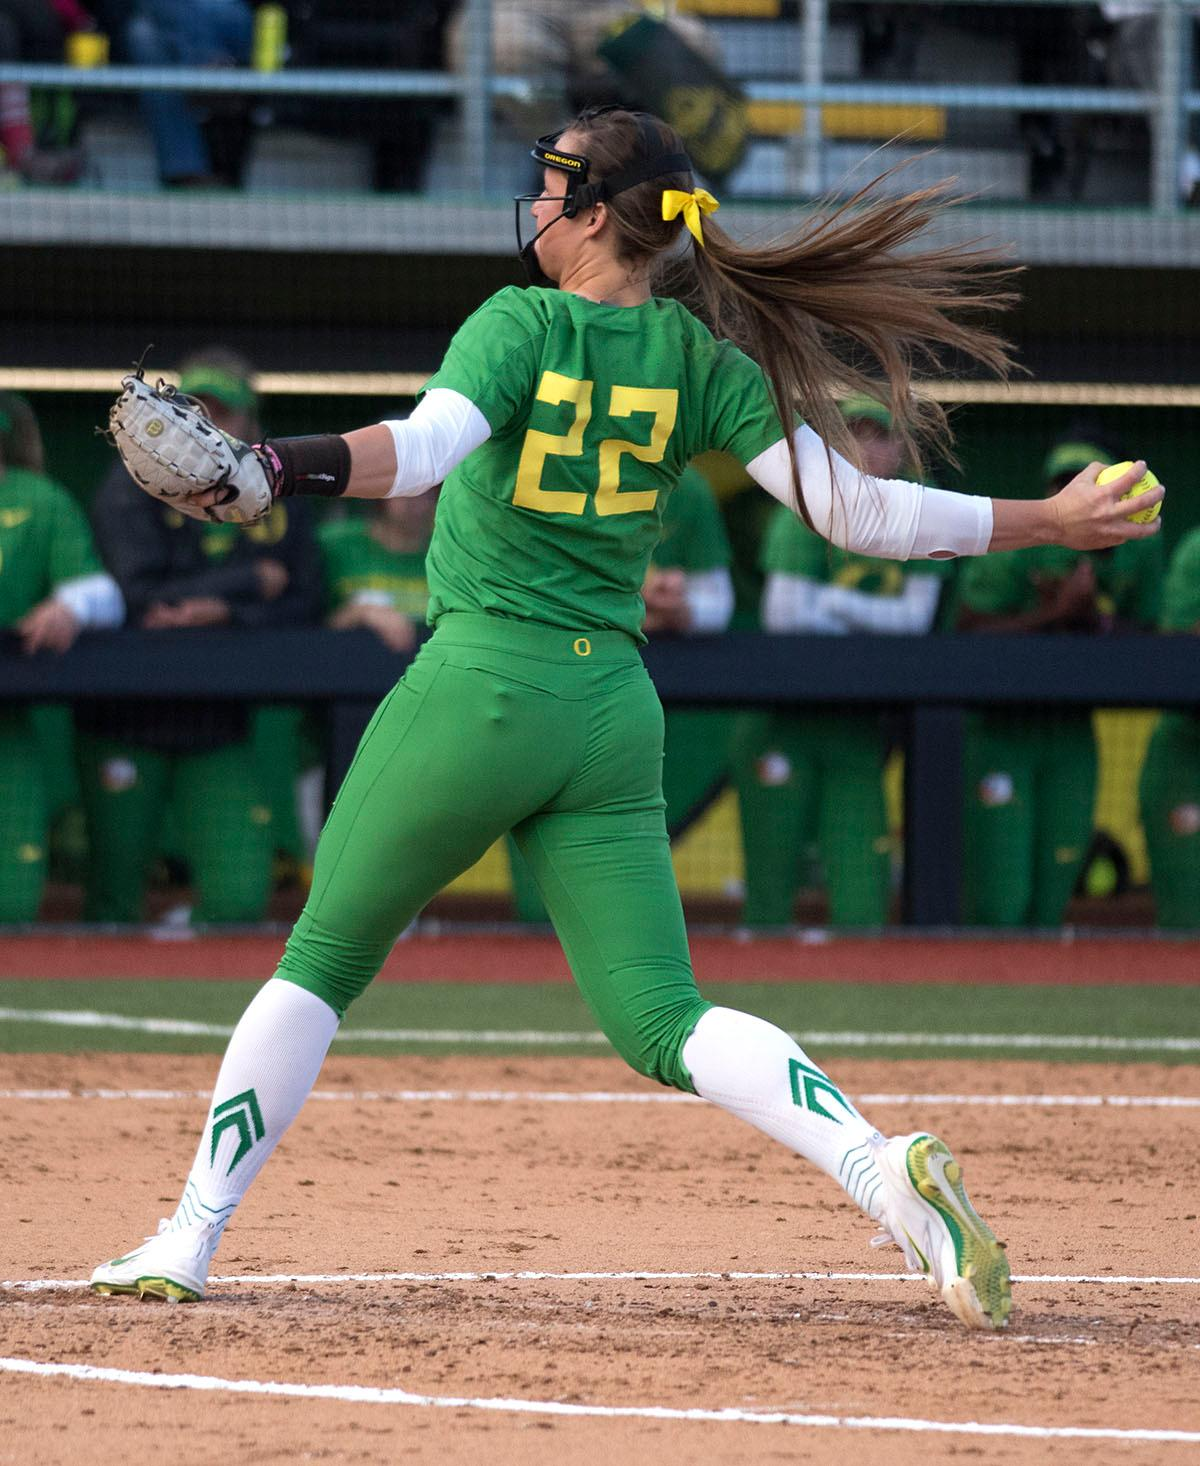 Oregon Ducks Megan Kleist (#22) pitches the ball. The No. 5 Oregon Ducks defeated the No. 2 Florida State Seminoles in both games of the doubleheader (11-0, 3-1) on Saturday afternoon. This sweep of the first two rounds of the postseason happened in front of a soldout crowd of 2,517 at Jane Sanders Stadium. Photo by Cheyenne Thorpe, Oregon News Lab